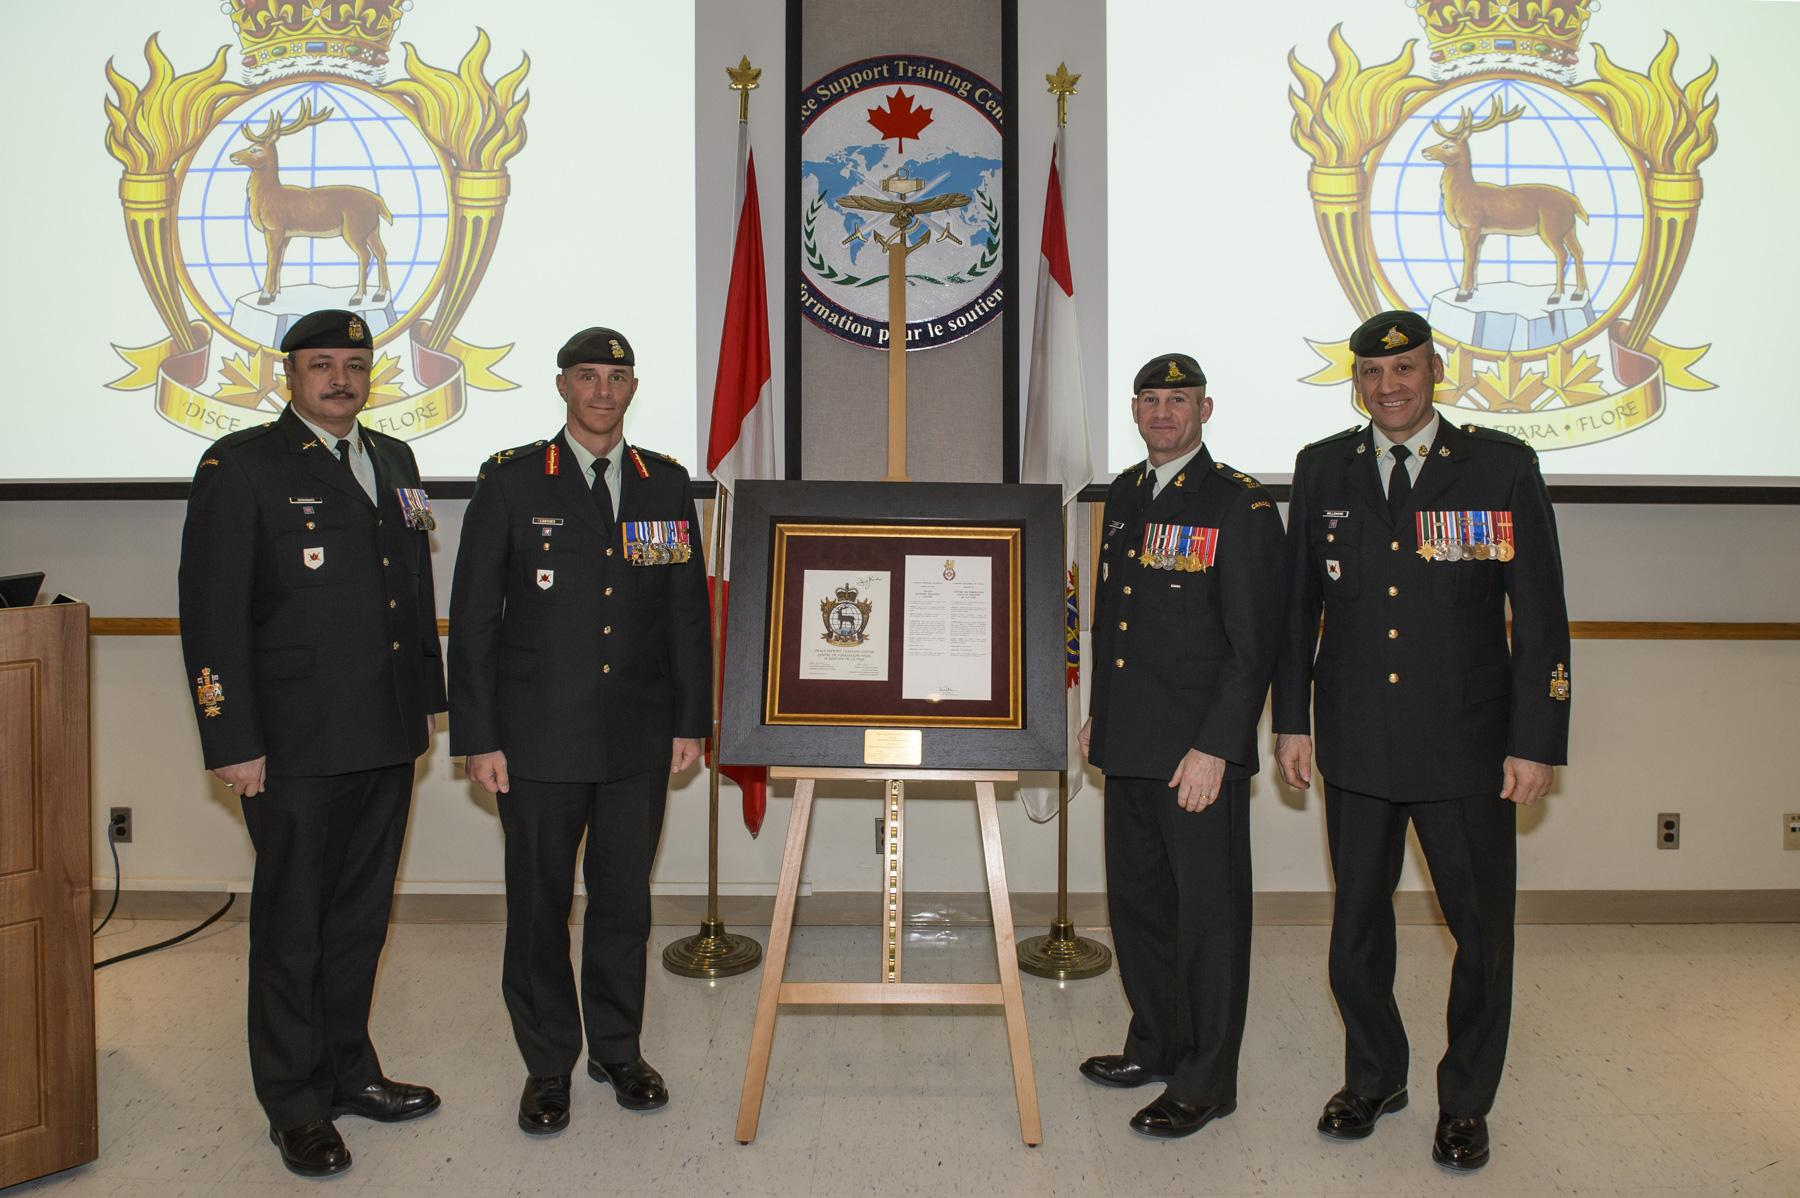 ARCHIVED - Article | New unit badge Unveiled for Canadian Army's